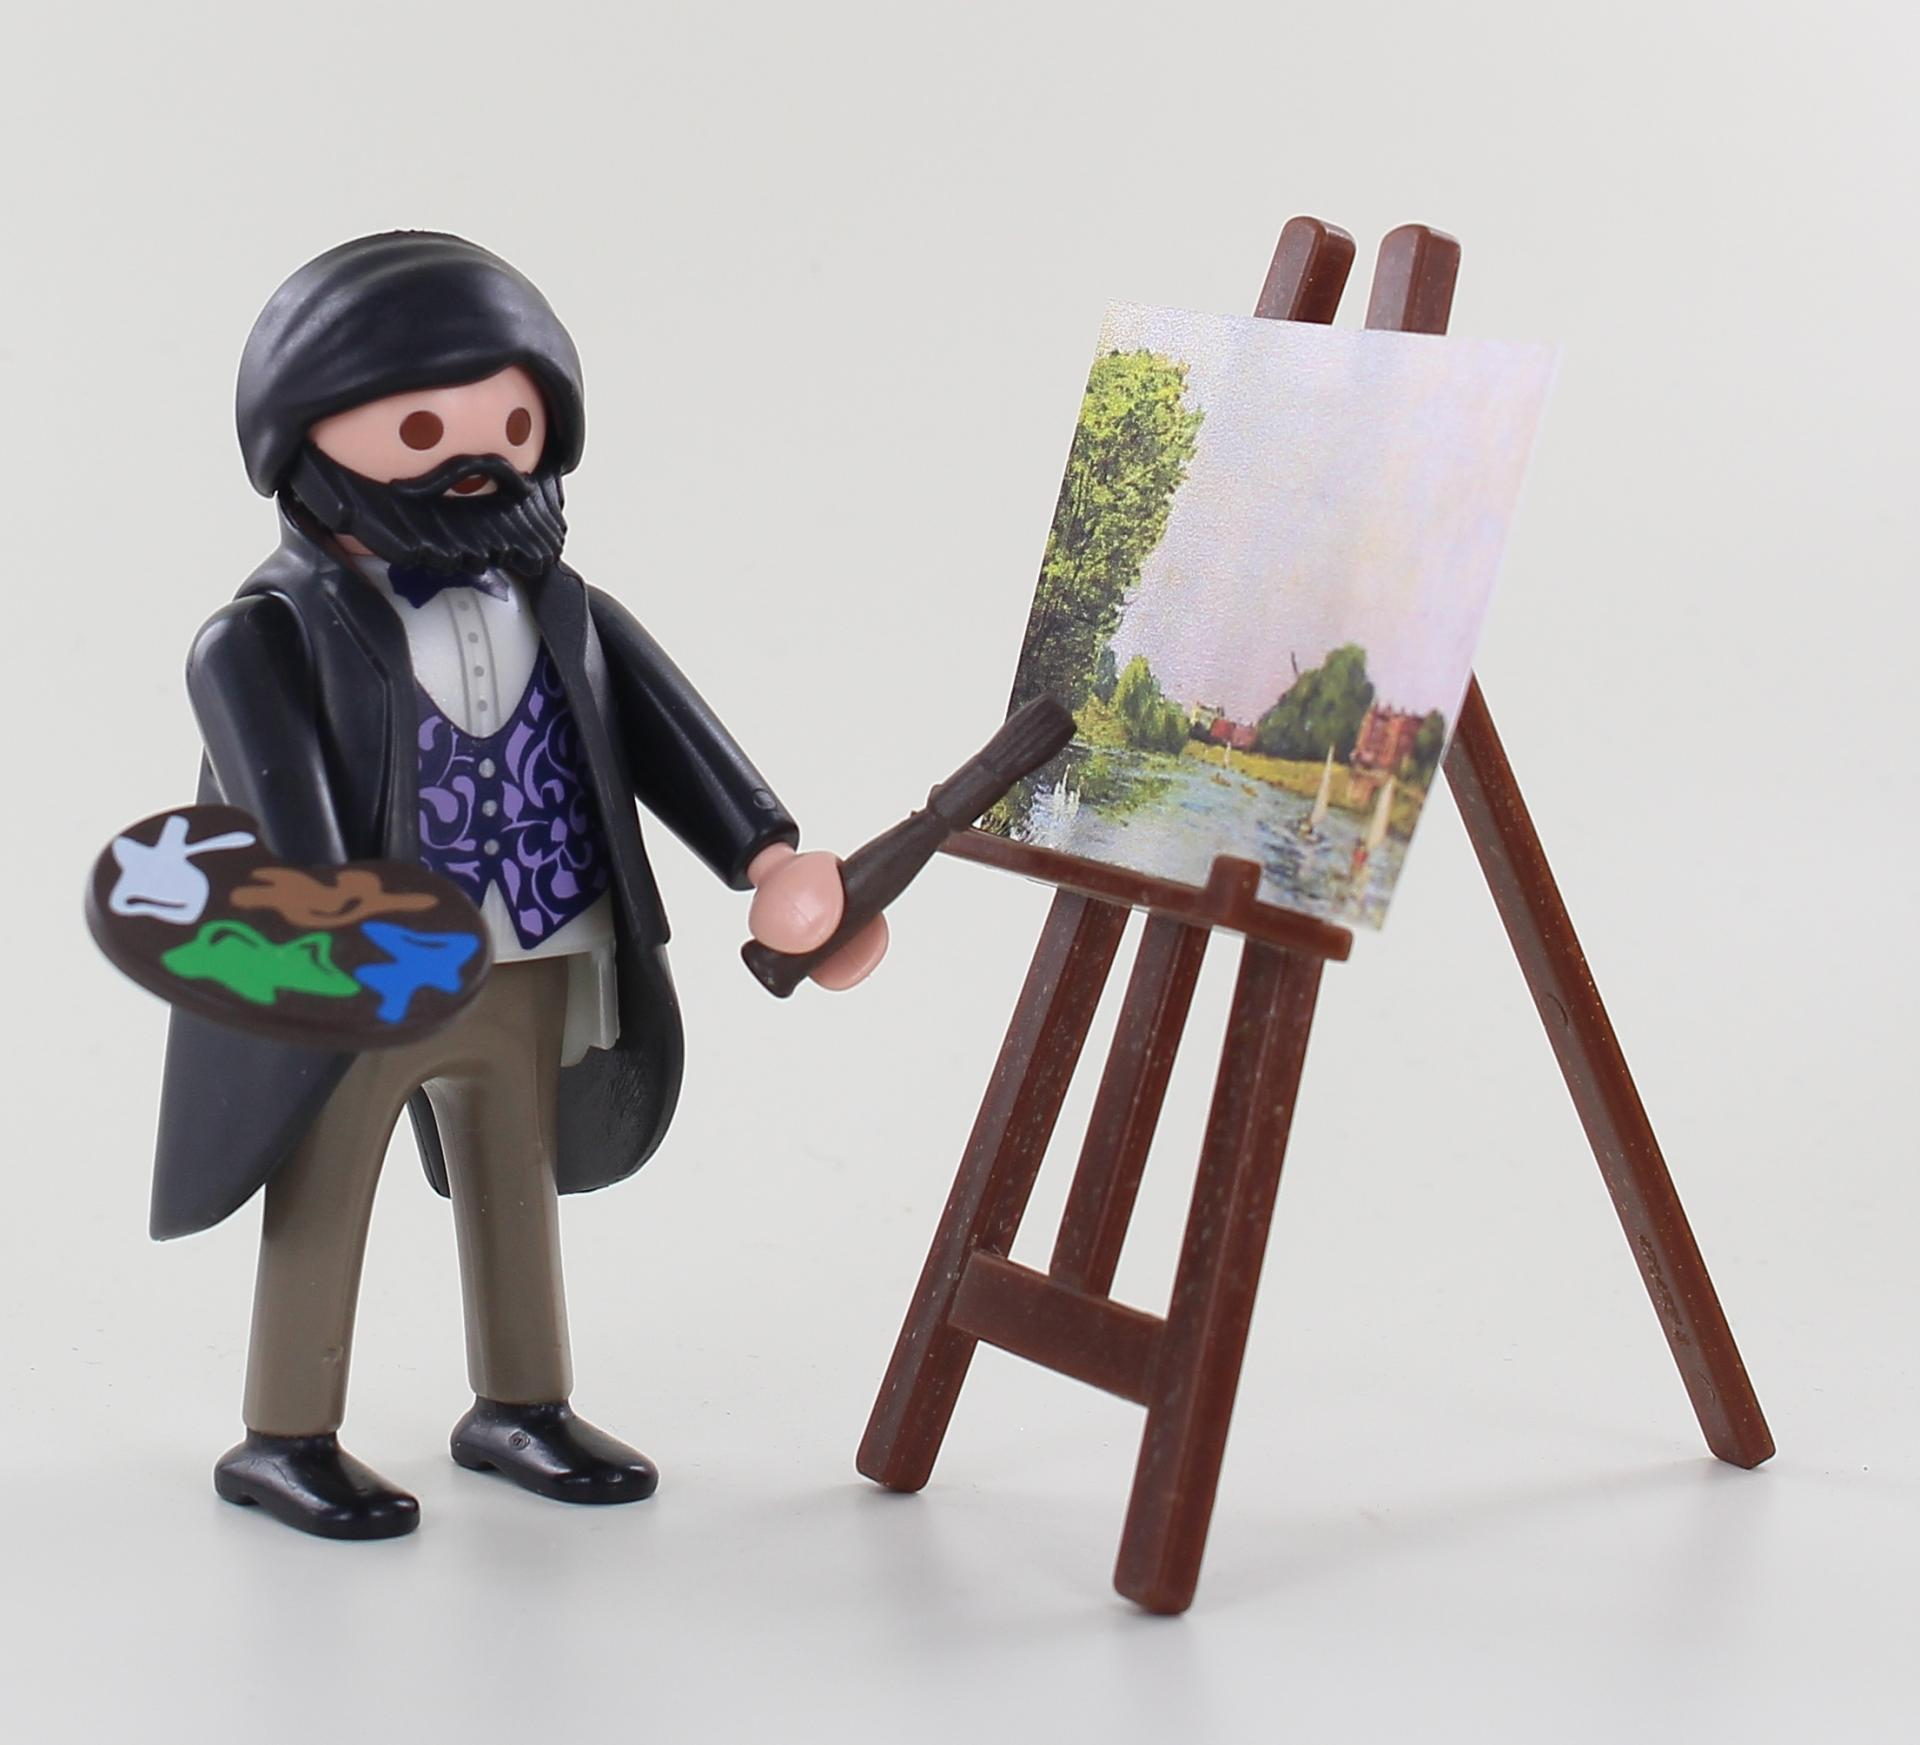 Playmobil alfred sisley dominique bethune 1